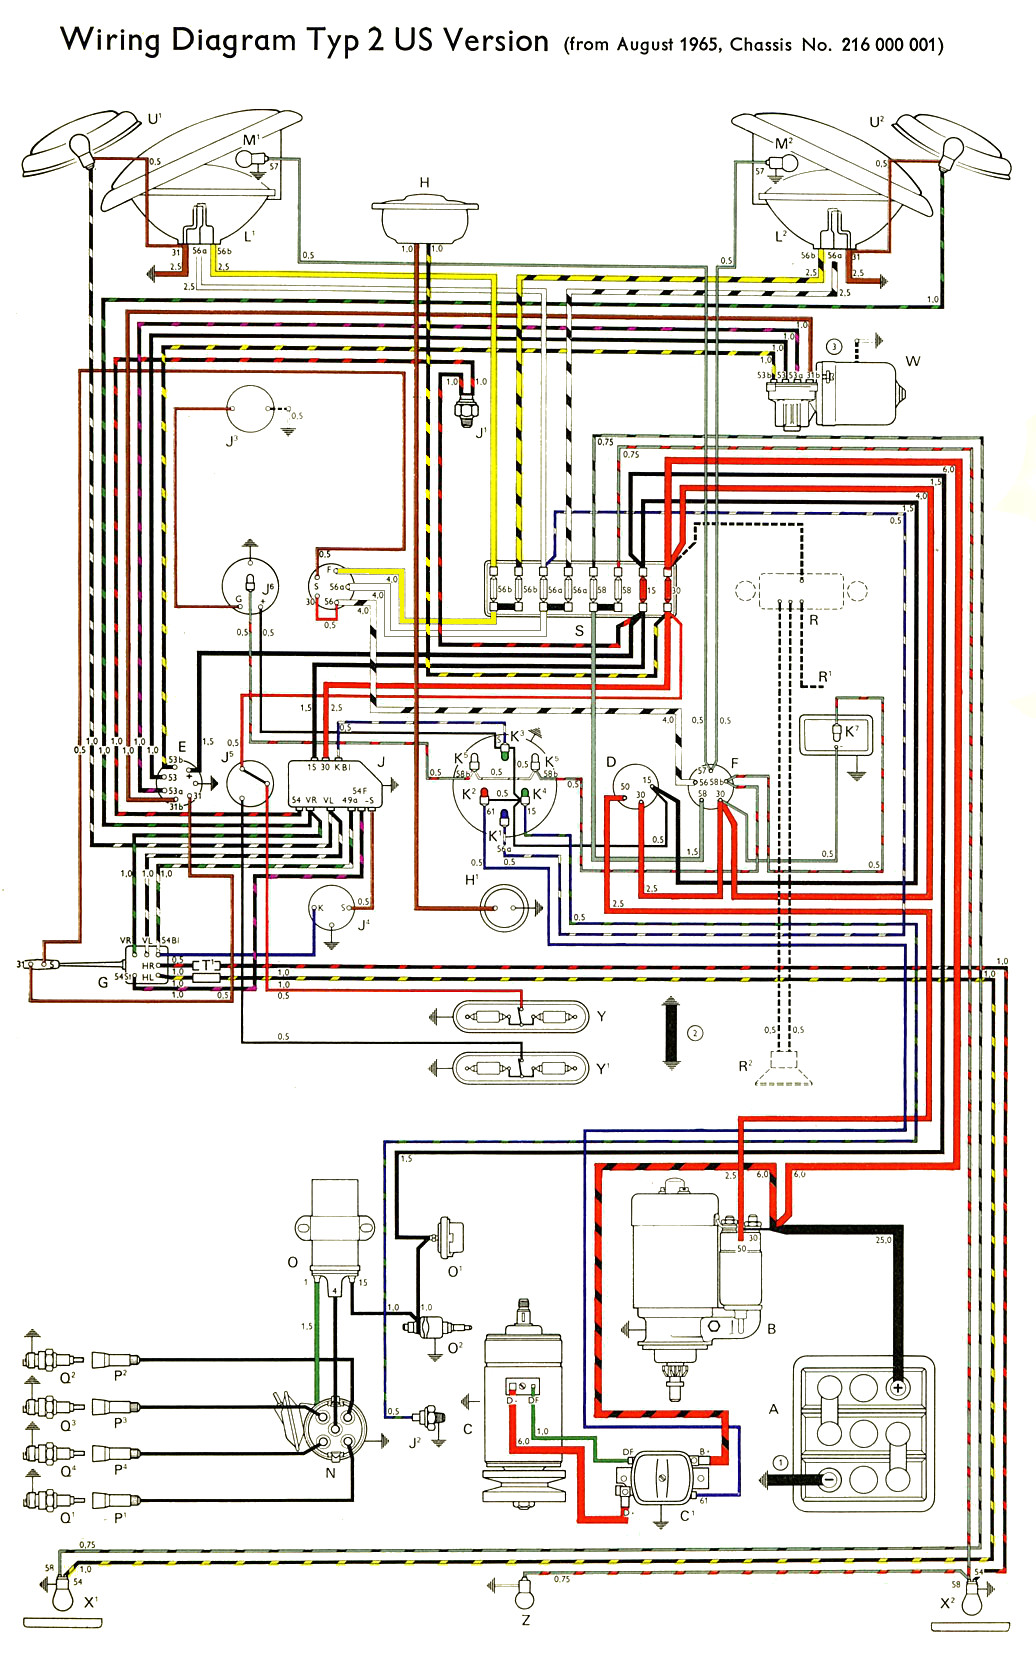 Type 2 Wiring Diagrams 2001 Mustang Diagram Windows